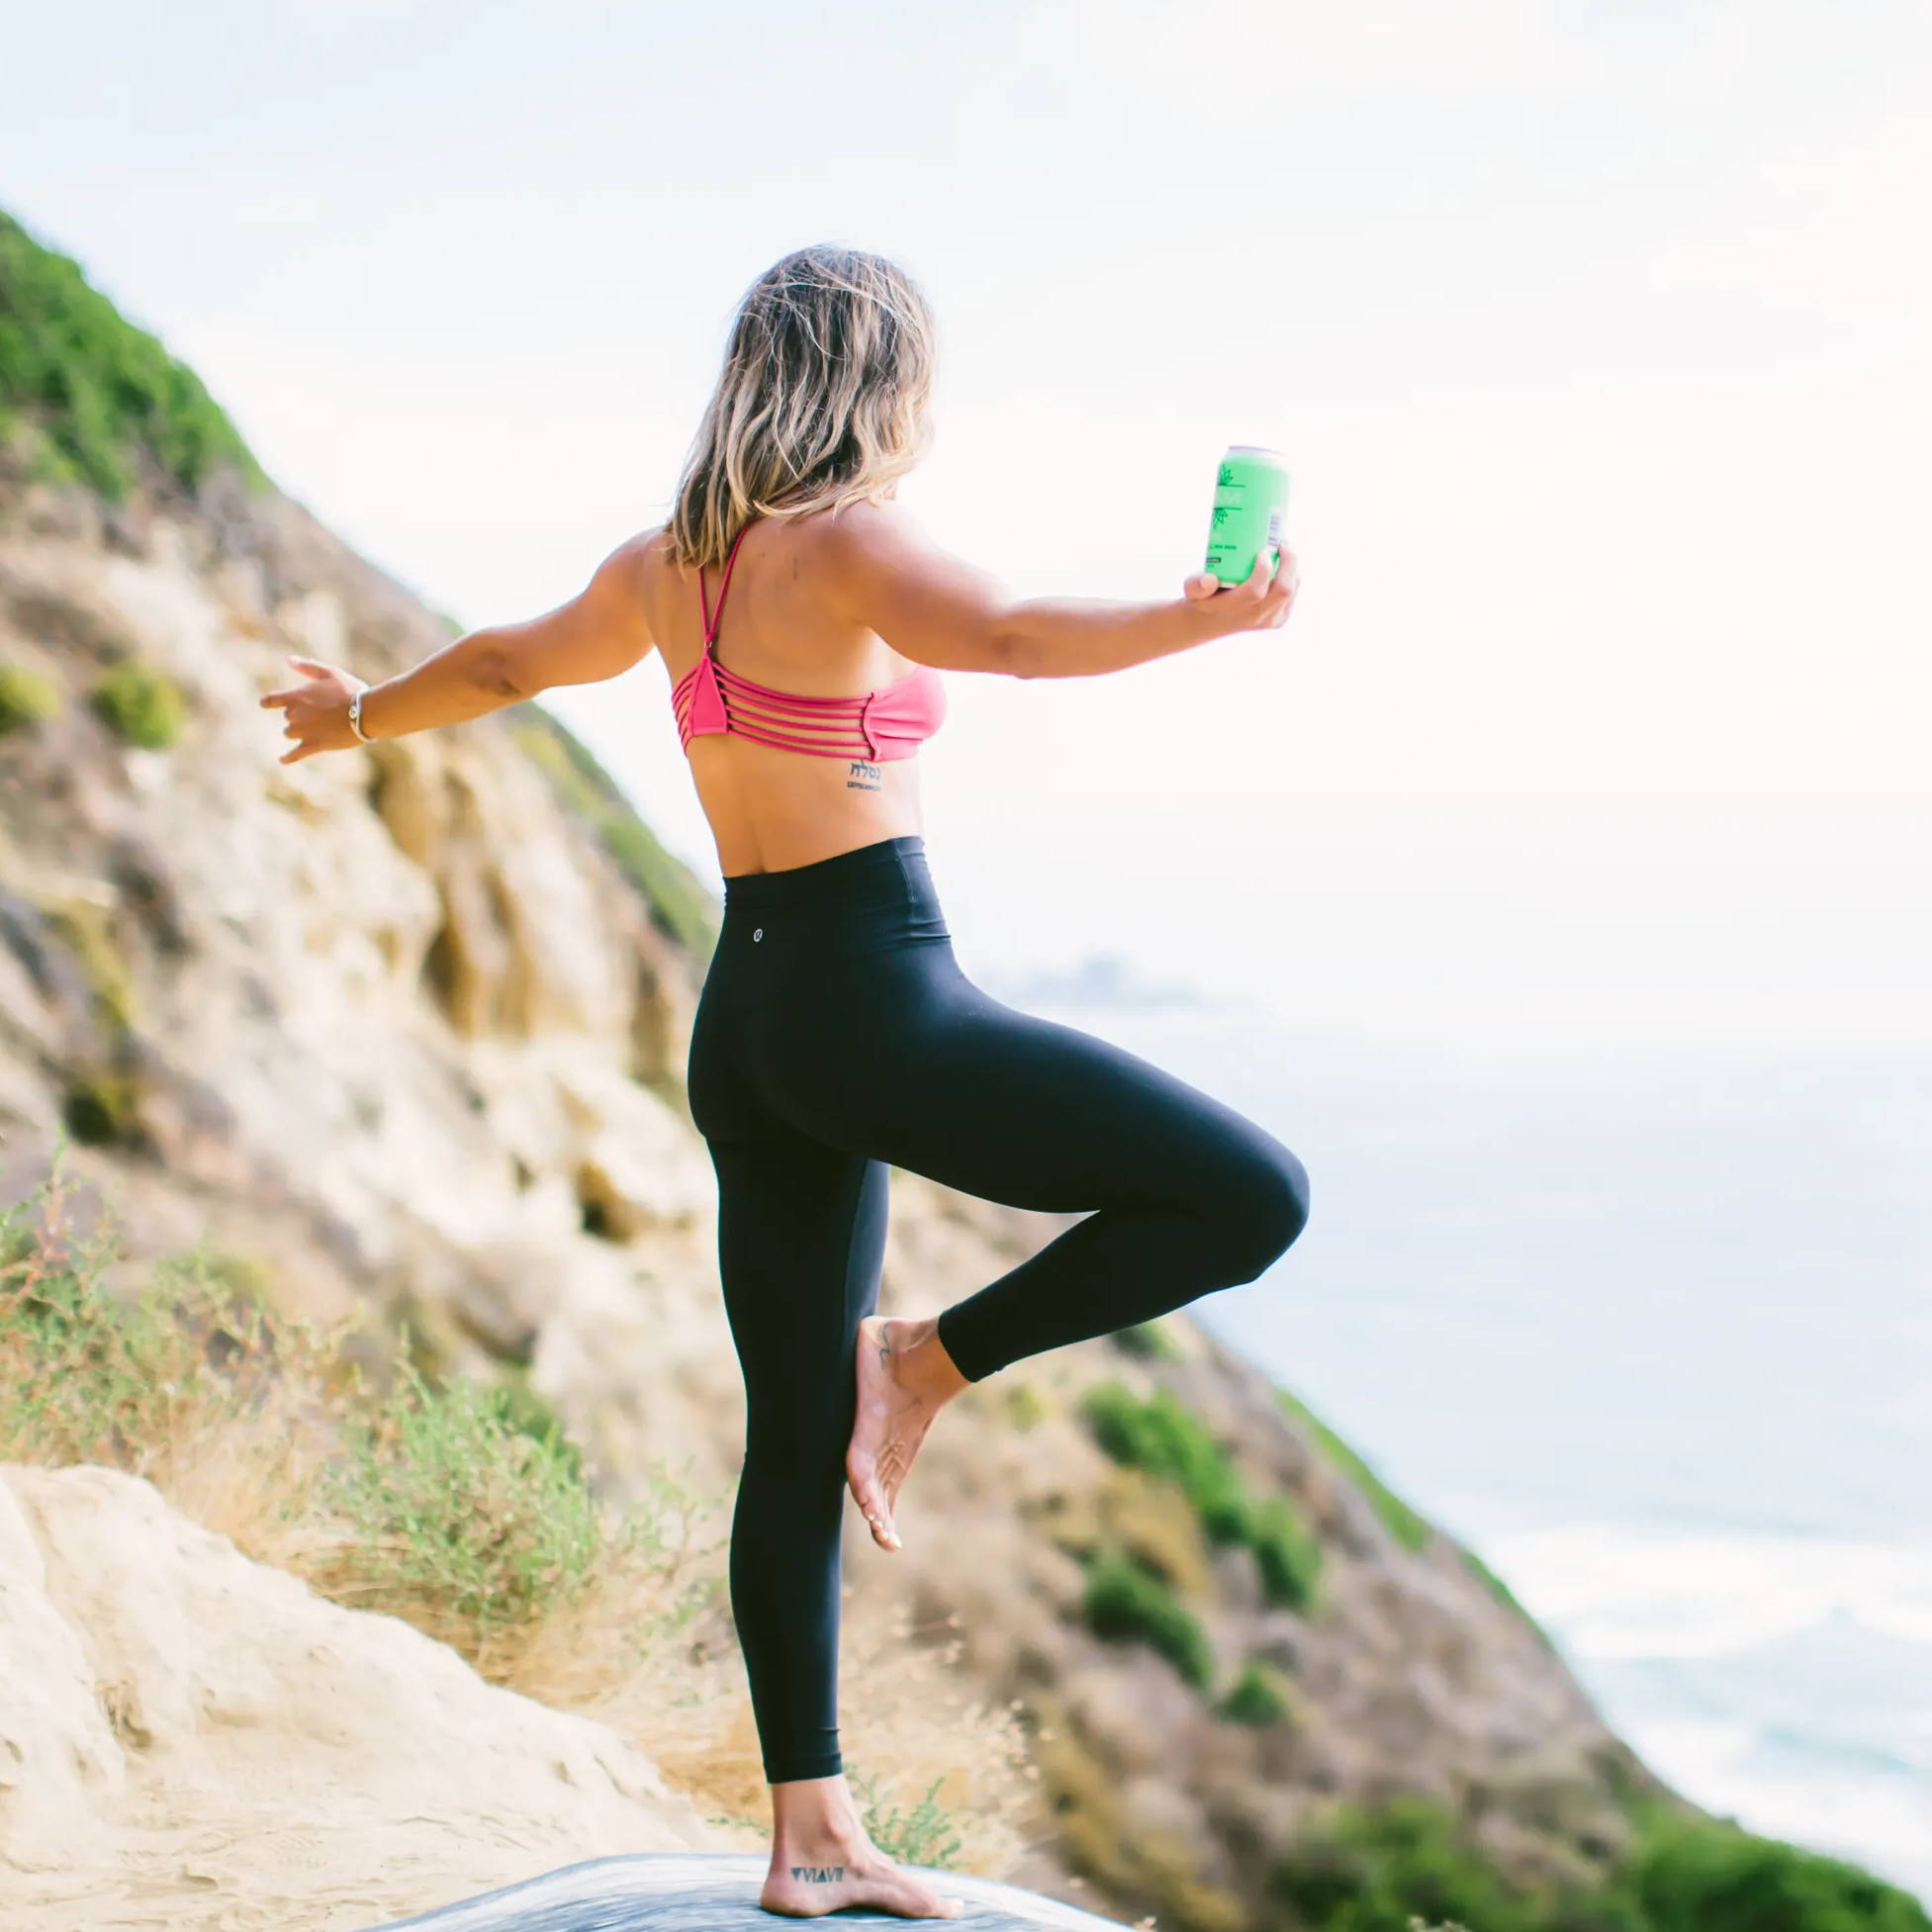 Woman stands over an ocean overlook, standing in a yoga pose and holding a can of Grüvi IPA